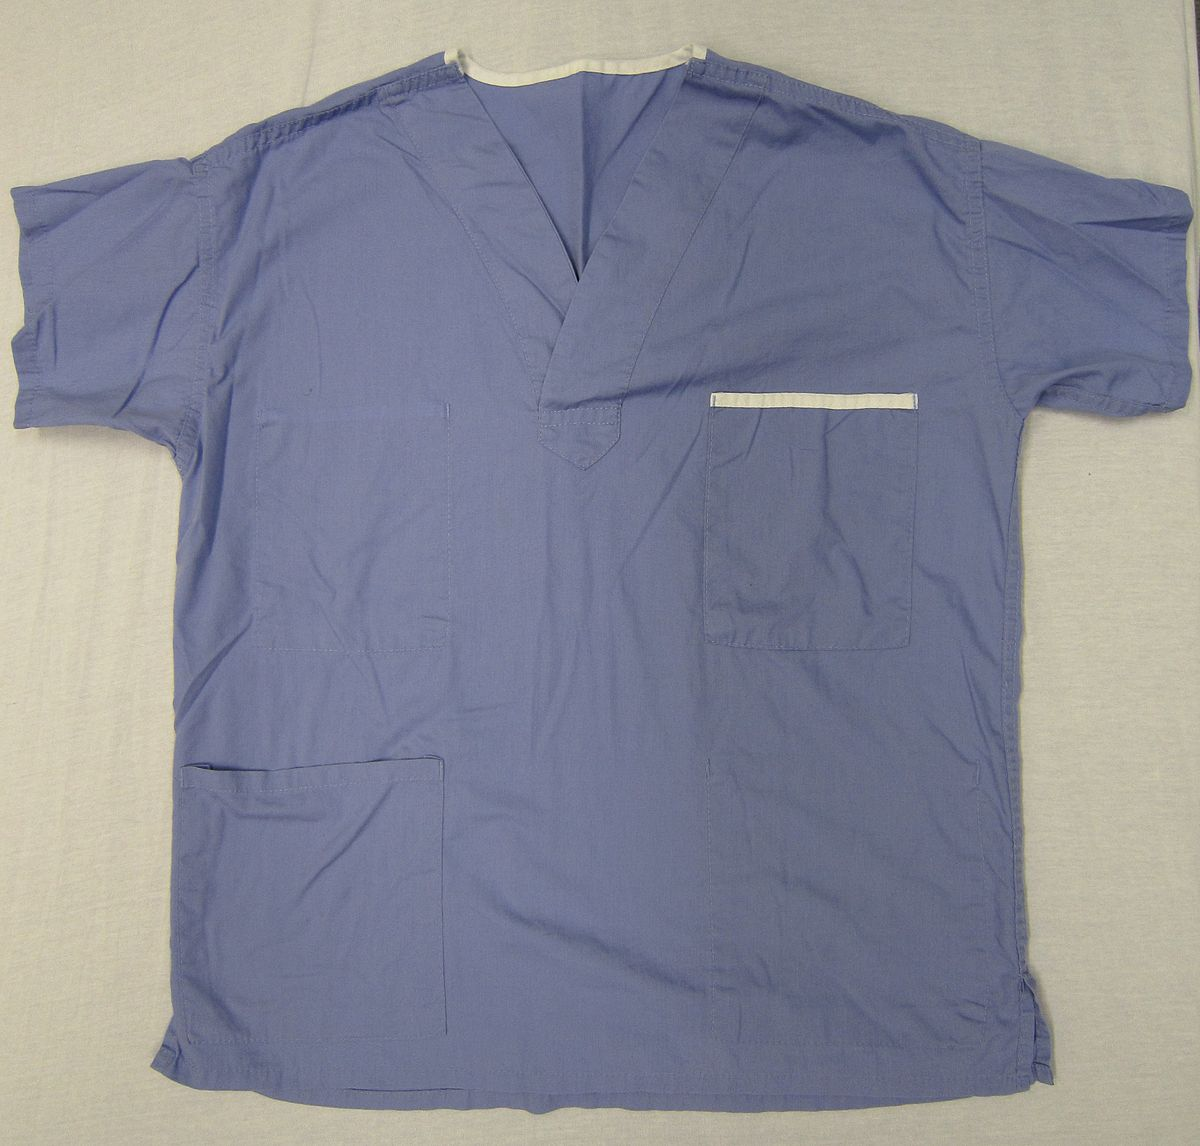 Scrubs (clothing) - Wikipedia